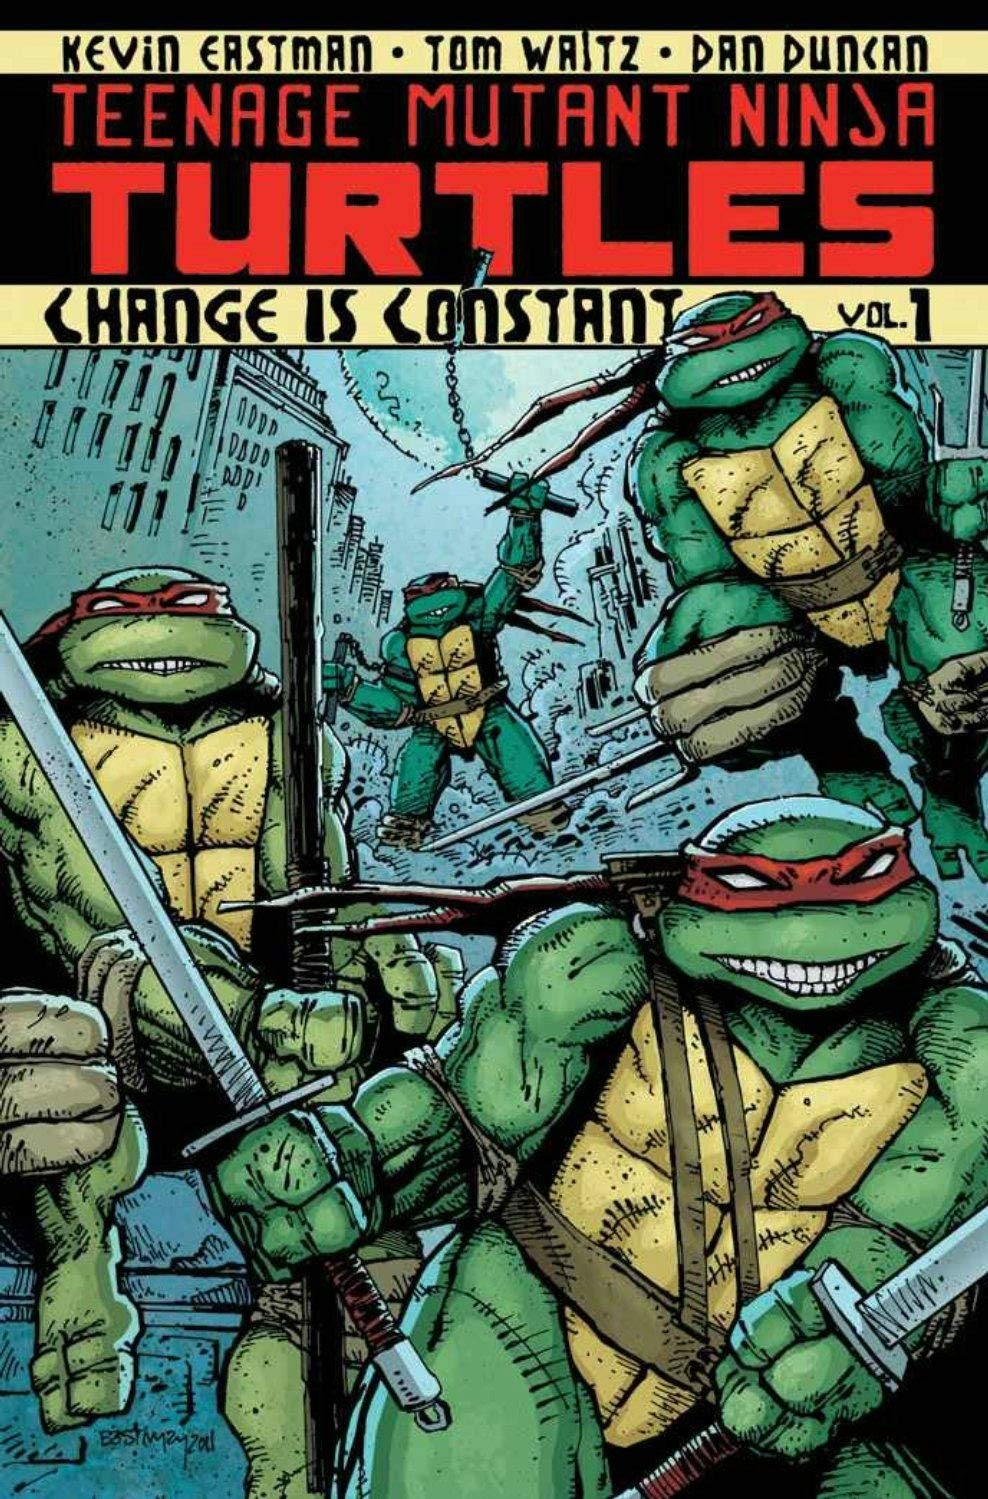 Teenage Mutant Ninja Turtles Volume 1: Change is Constant (TPB) (2012)